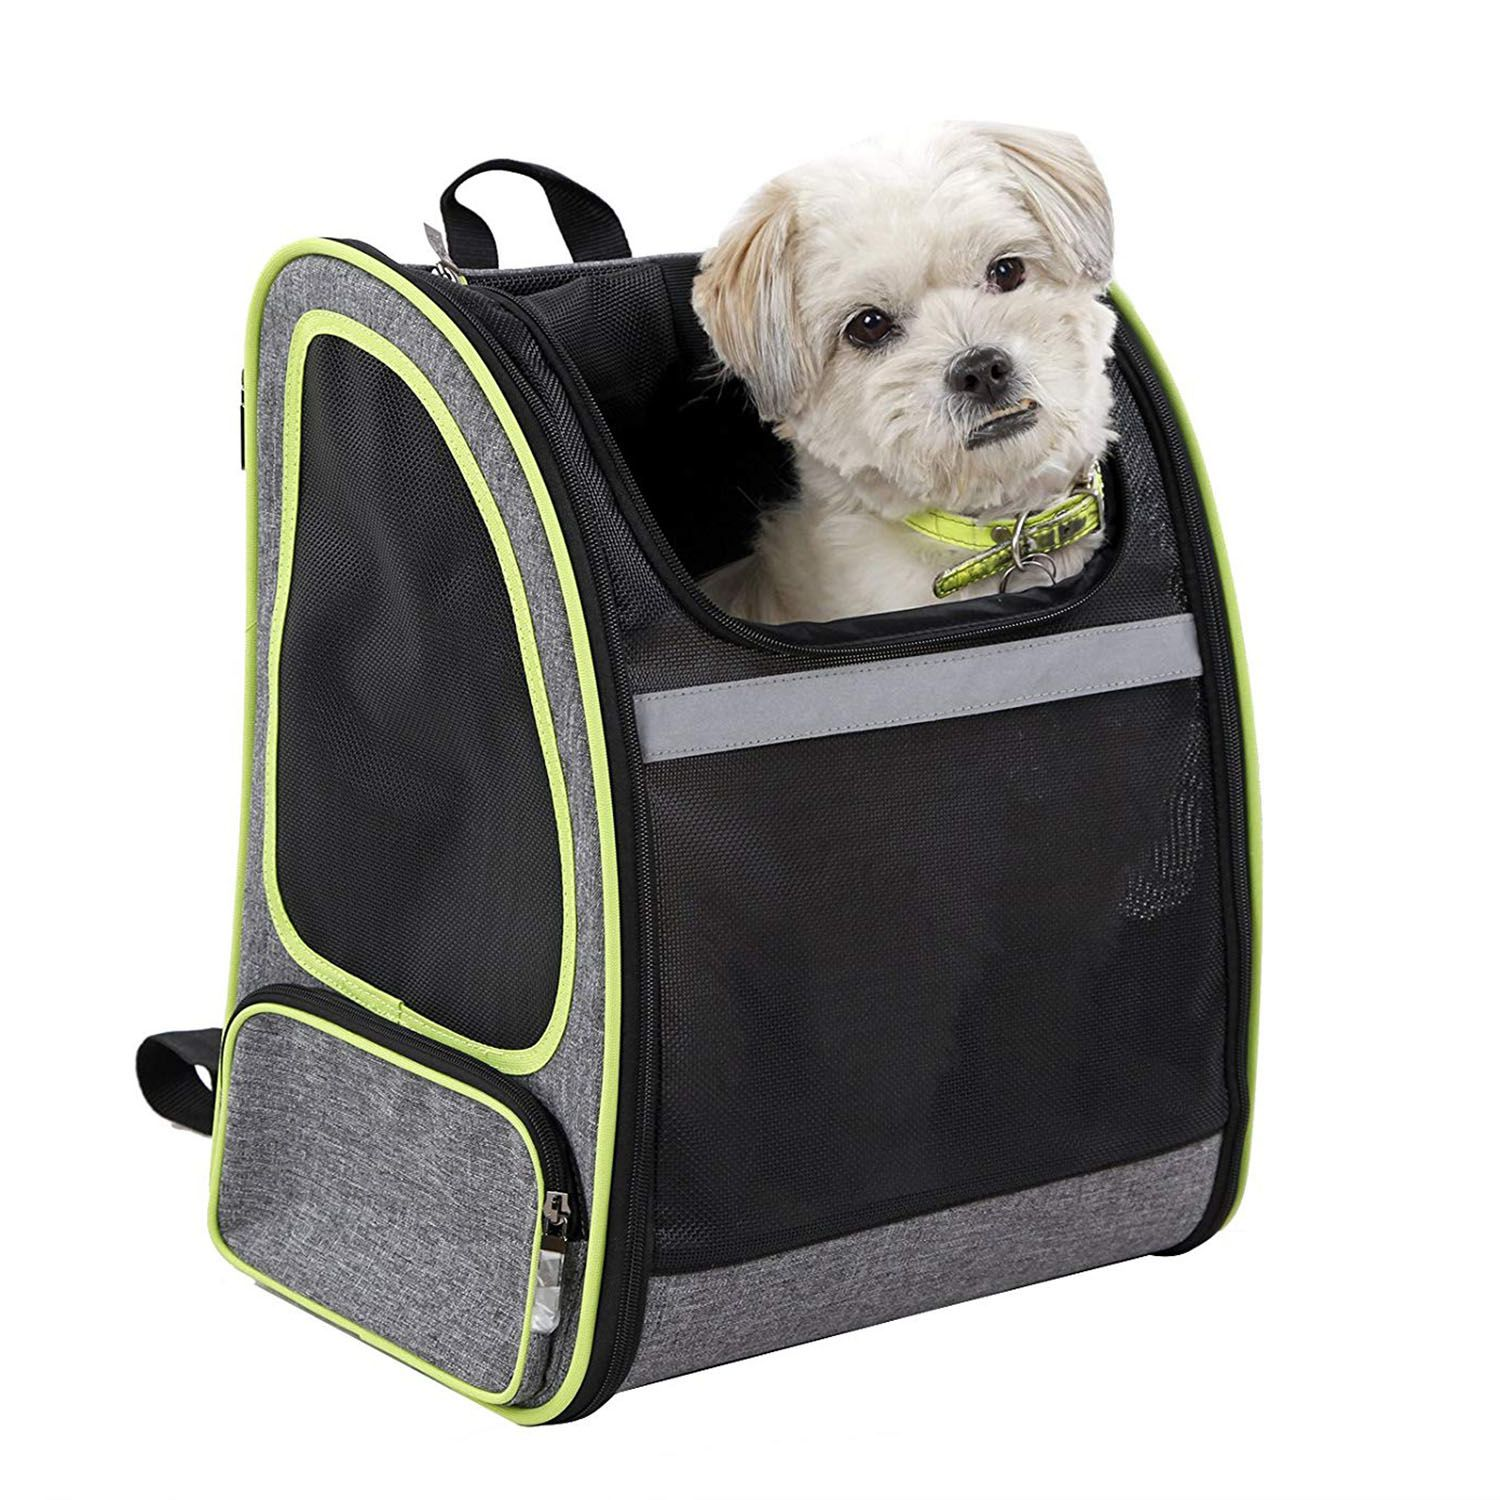 Hot Premium Pet Carrier Backpack For Small Cats And Dogs Ventilated Design Strap Buckle Support Designed For Travel Hiking